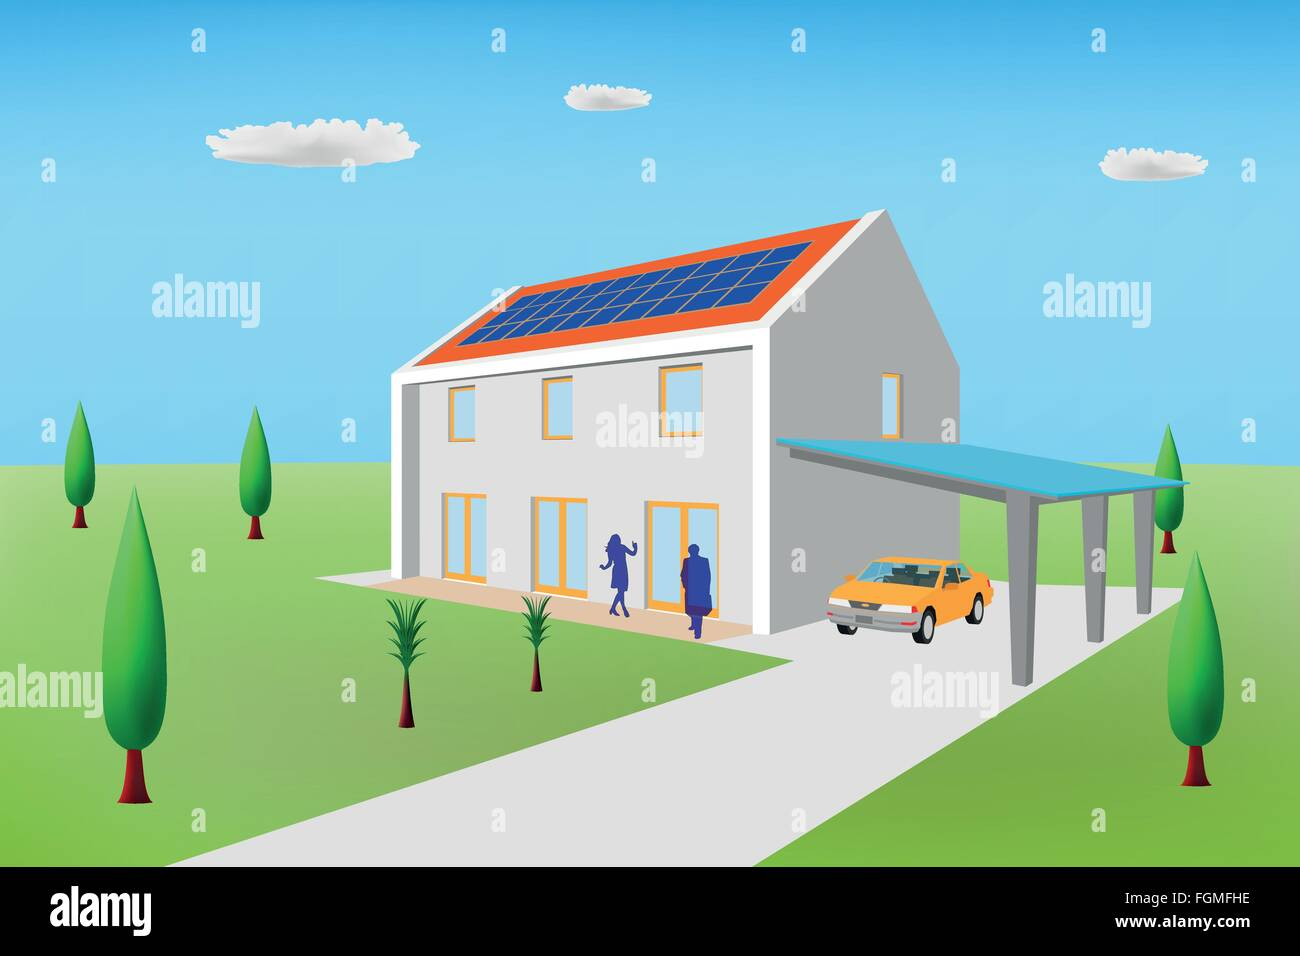 Passive house with photovoltaic panels - Stock Vector